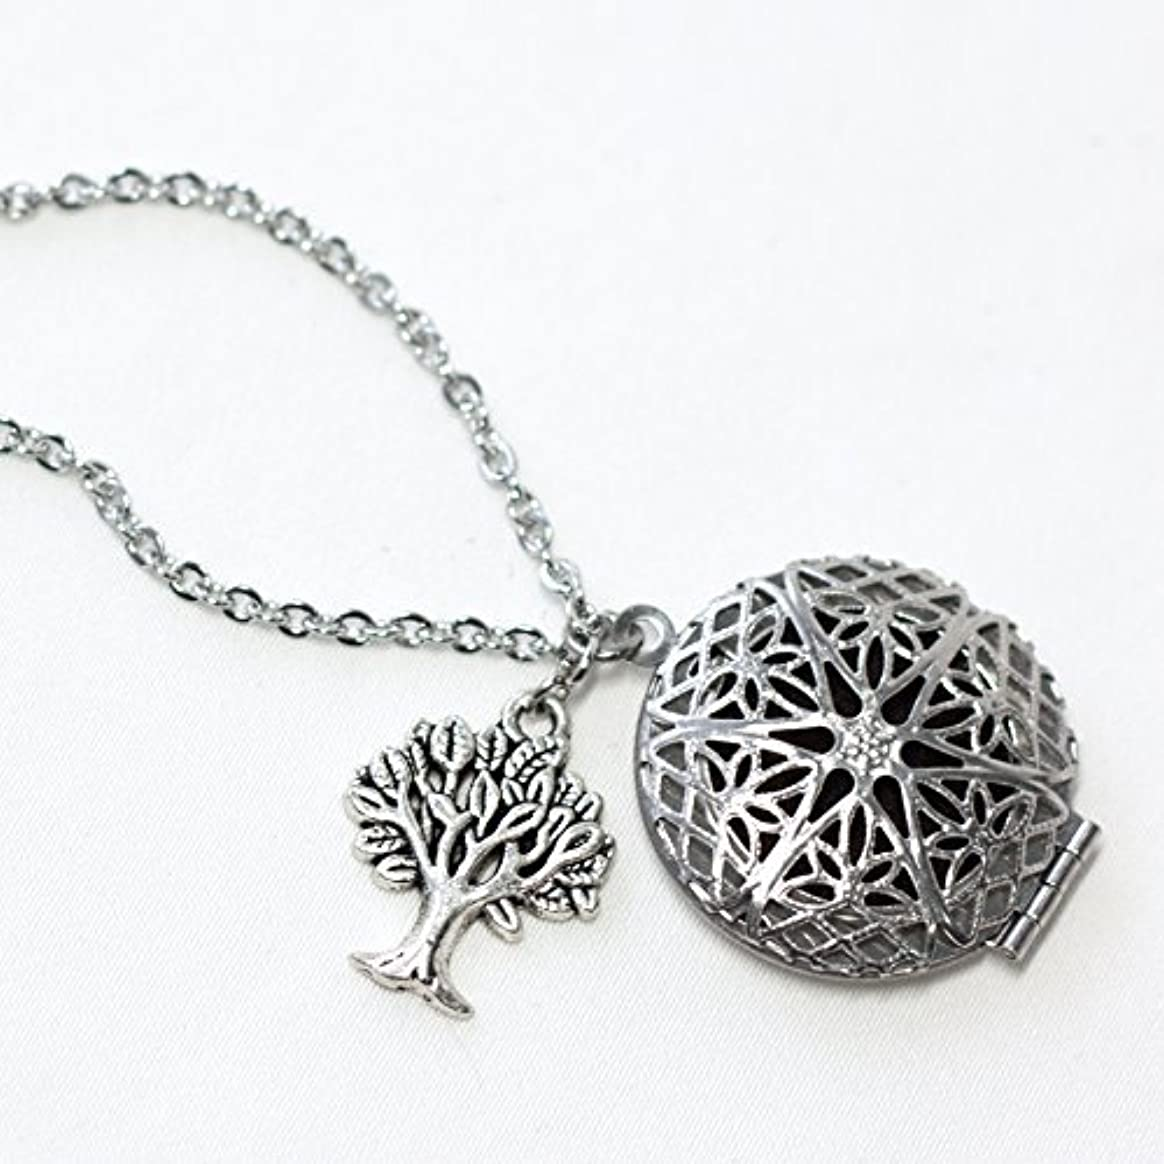 ピラミッドマント明るいTree Diffuser Necklace for Essential Oils 18 inches with felt pads [並行輸入品]